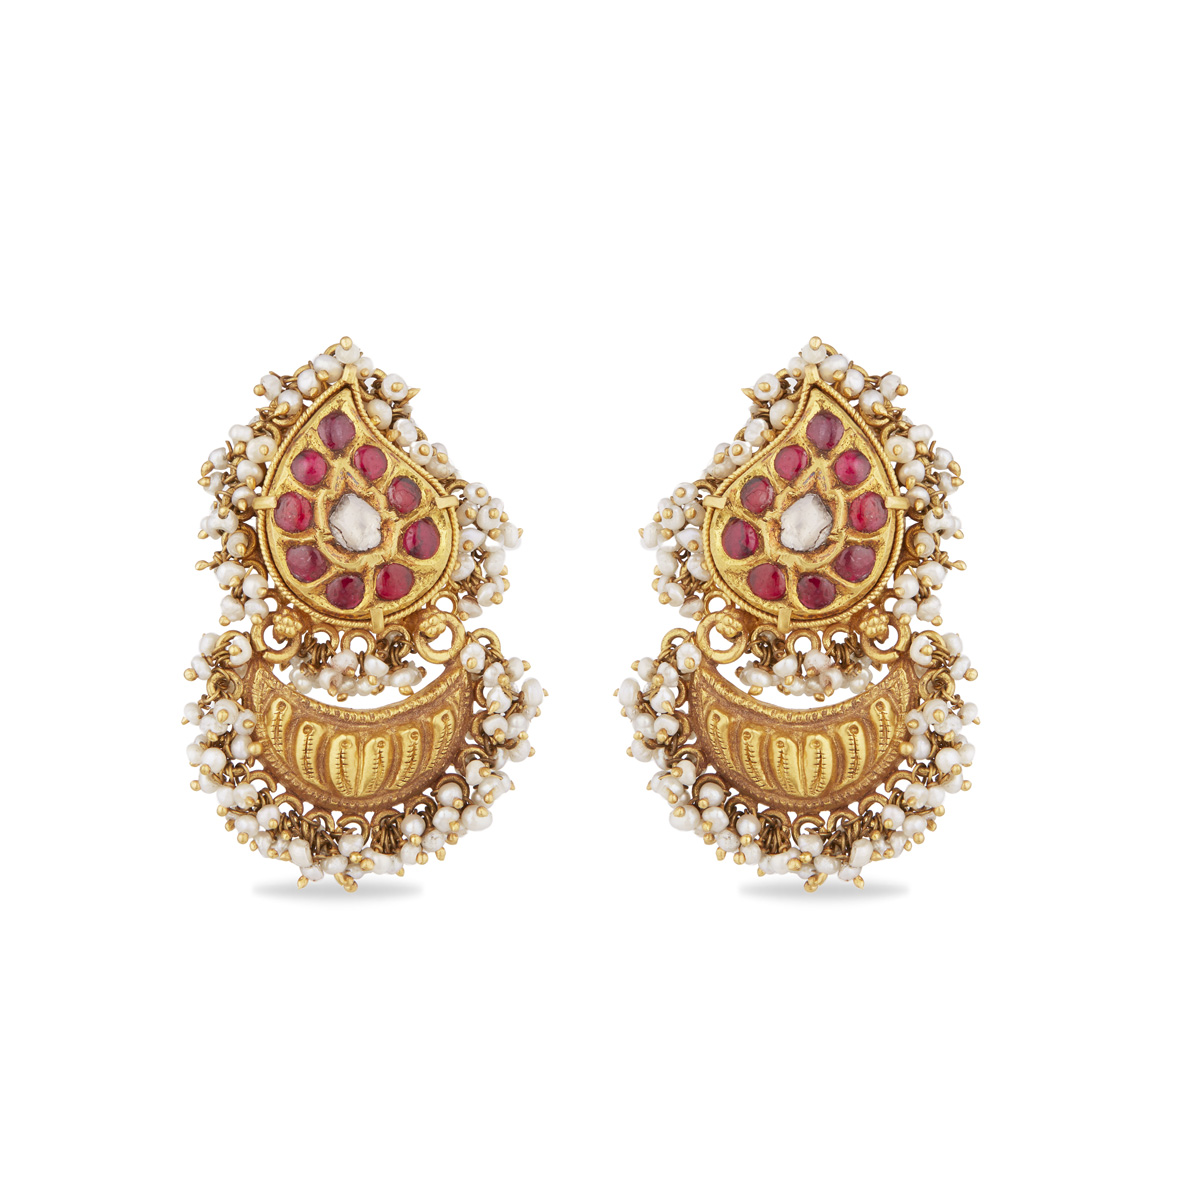 The Ulani Earrings